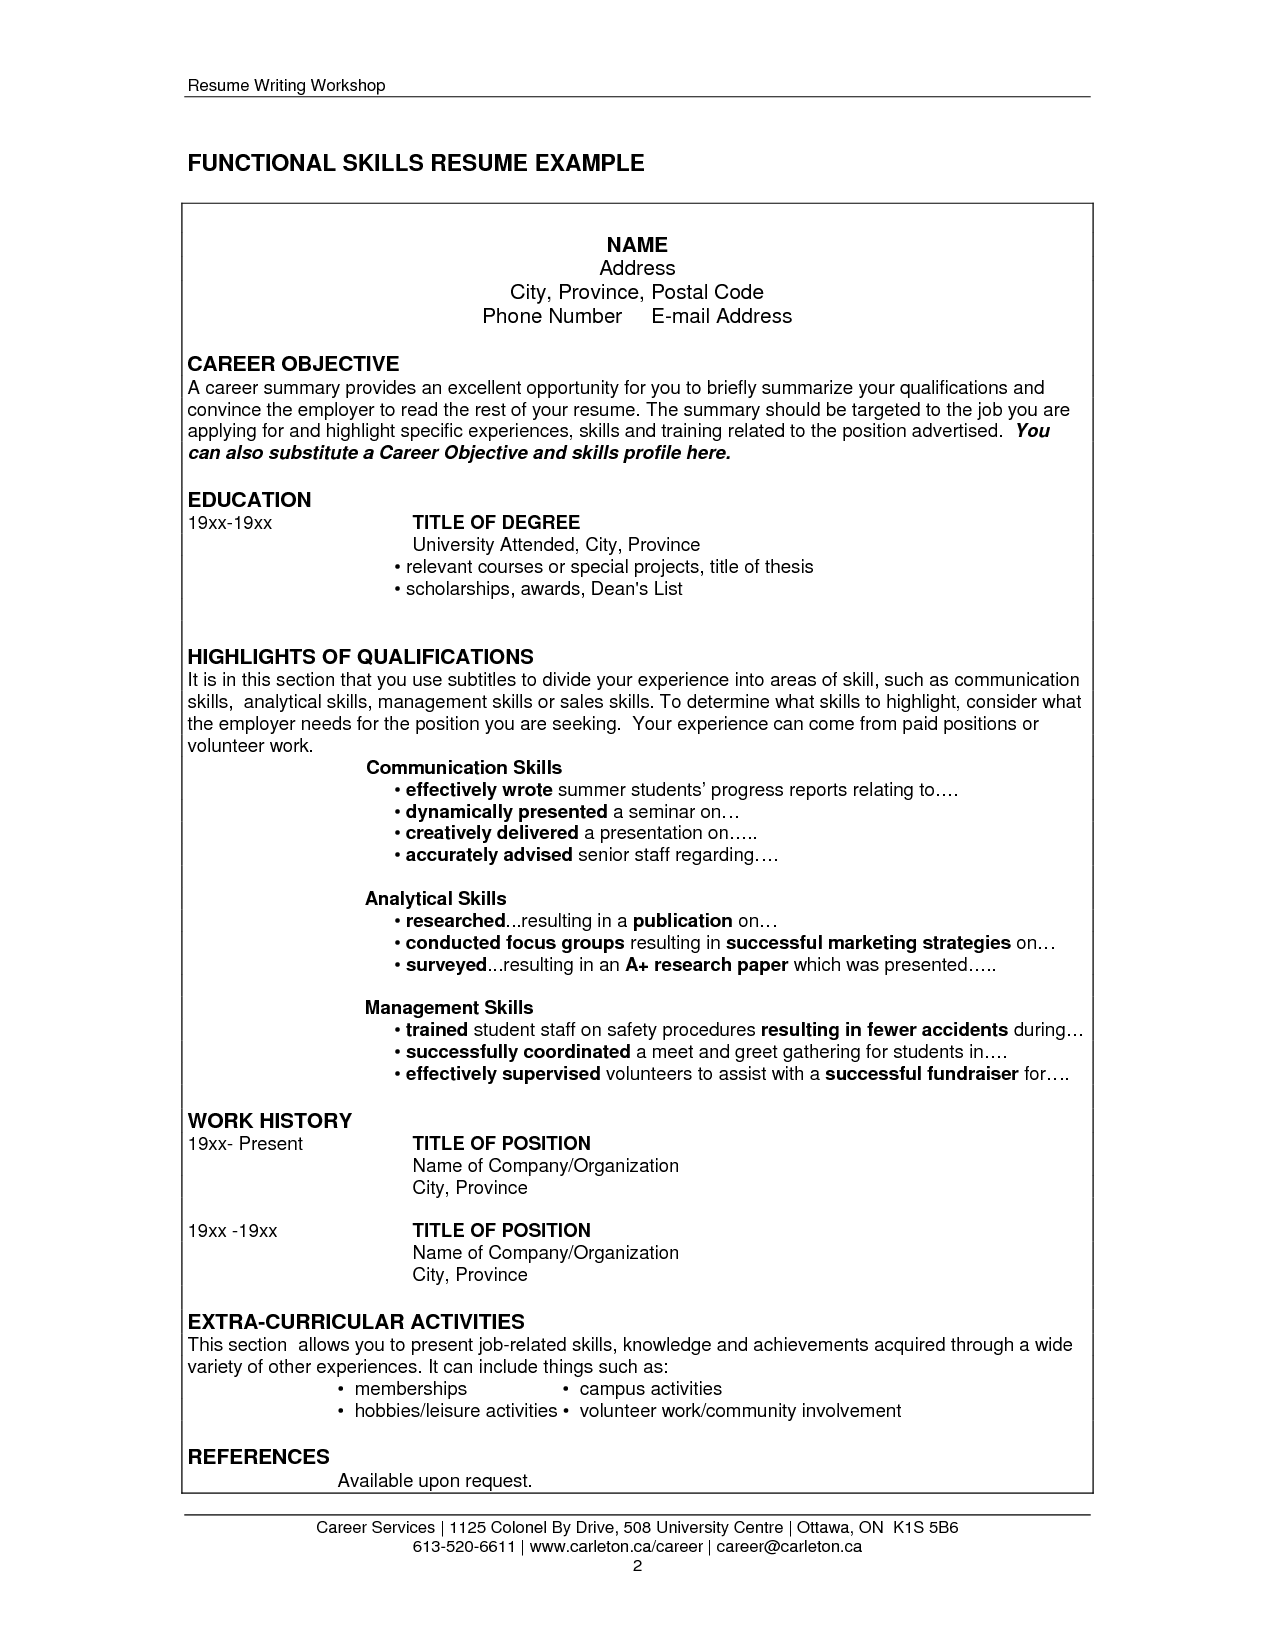 Resume Format Template Amazing Image Result For Skills Resume Format  Business  Pinterest